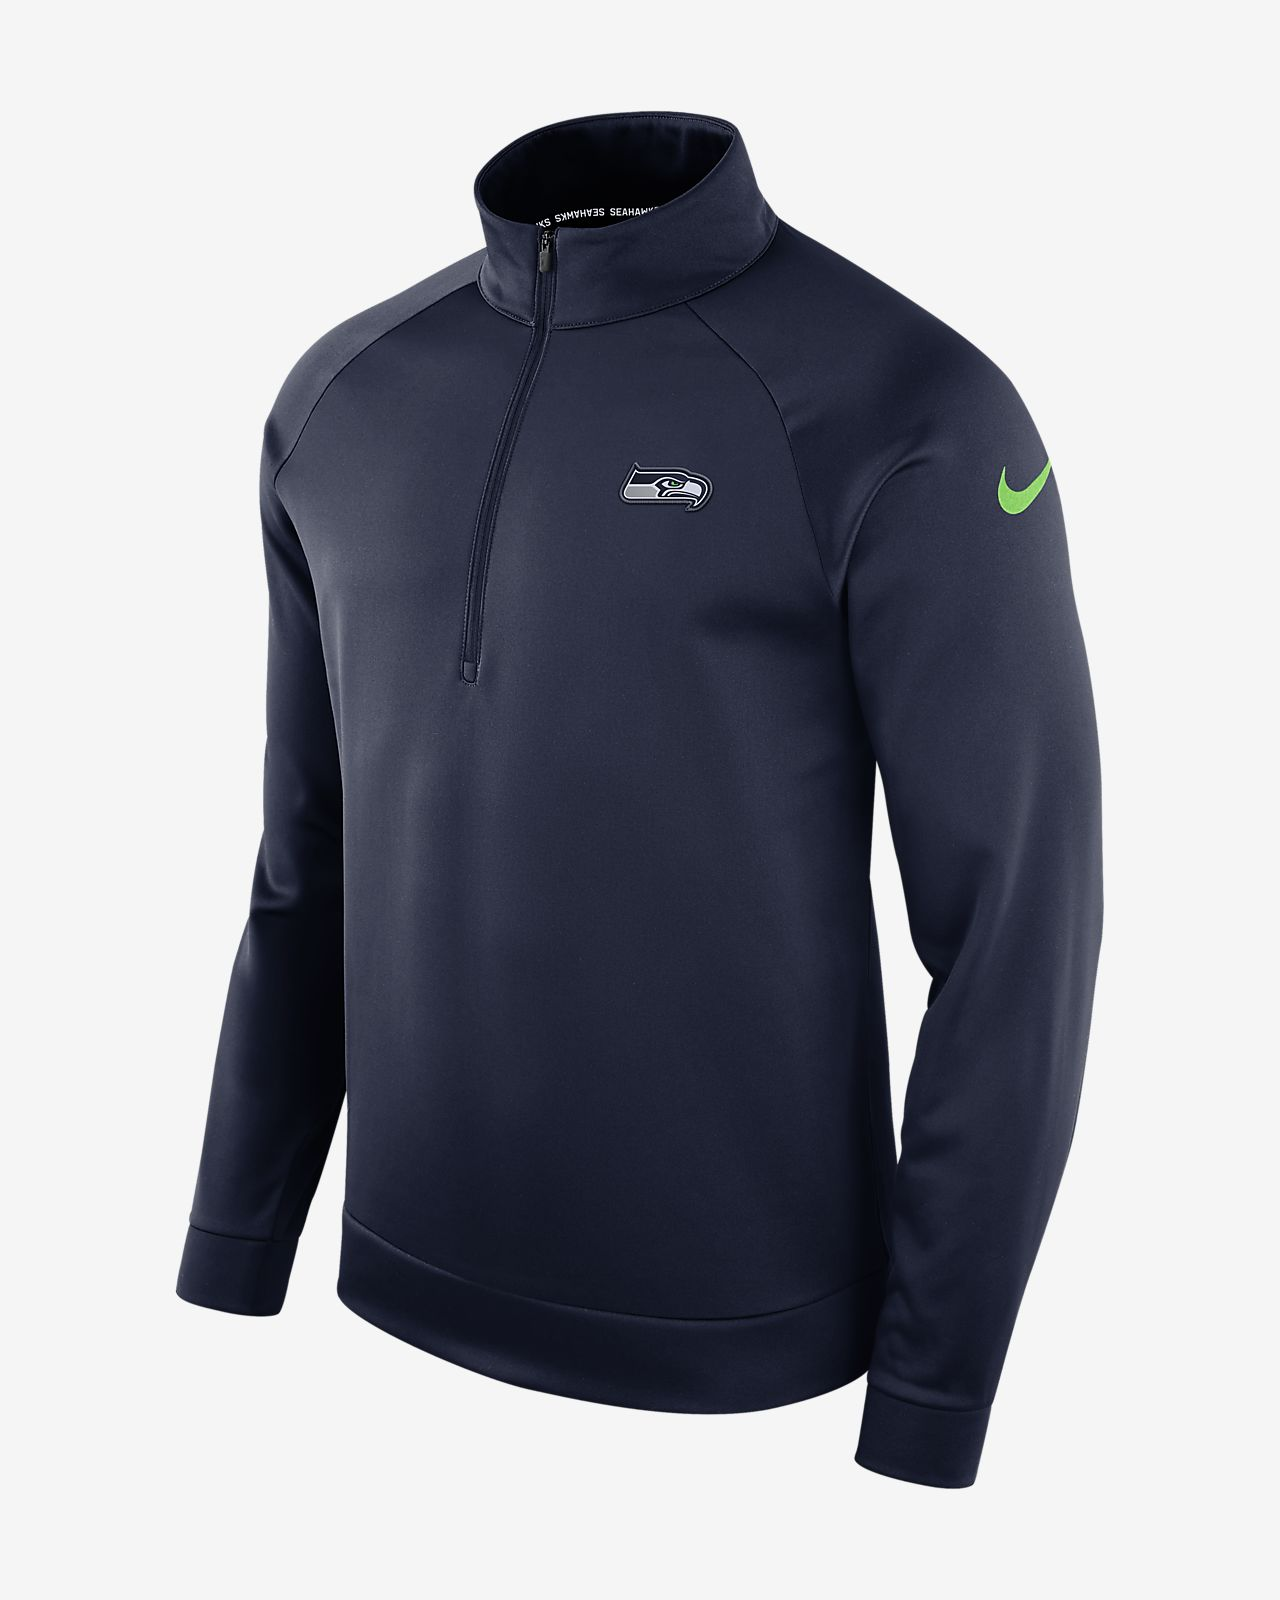 38f86cc39f1a Nike Dri-FIT Therma (NFL Seahawks) Men s Half-Zip Long Sleeve Top ...